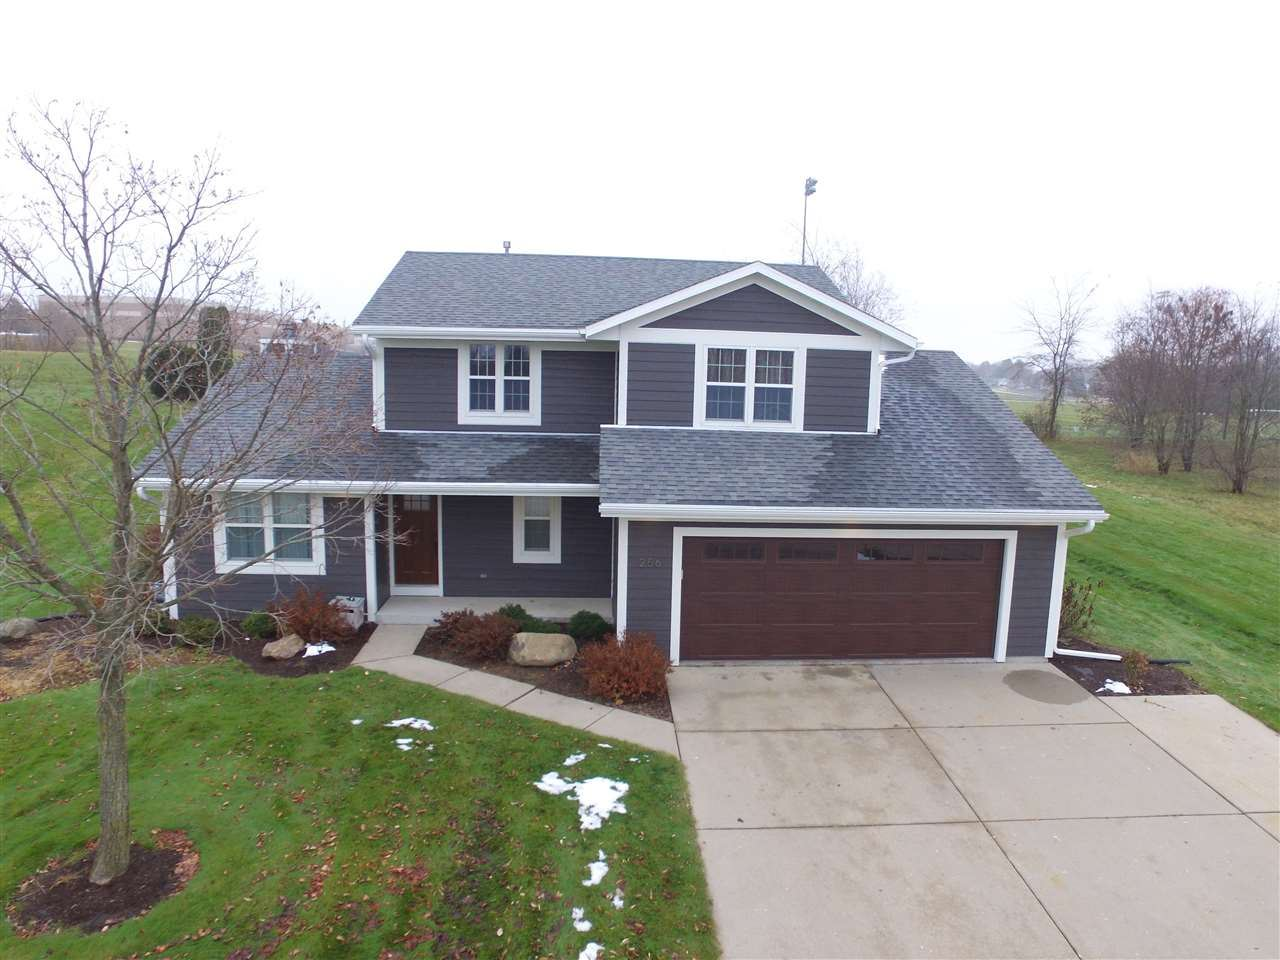 256 Knoll View Dr, Janesville, WI 53548 - #: 1872865